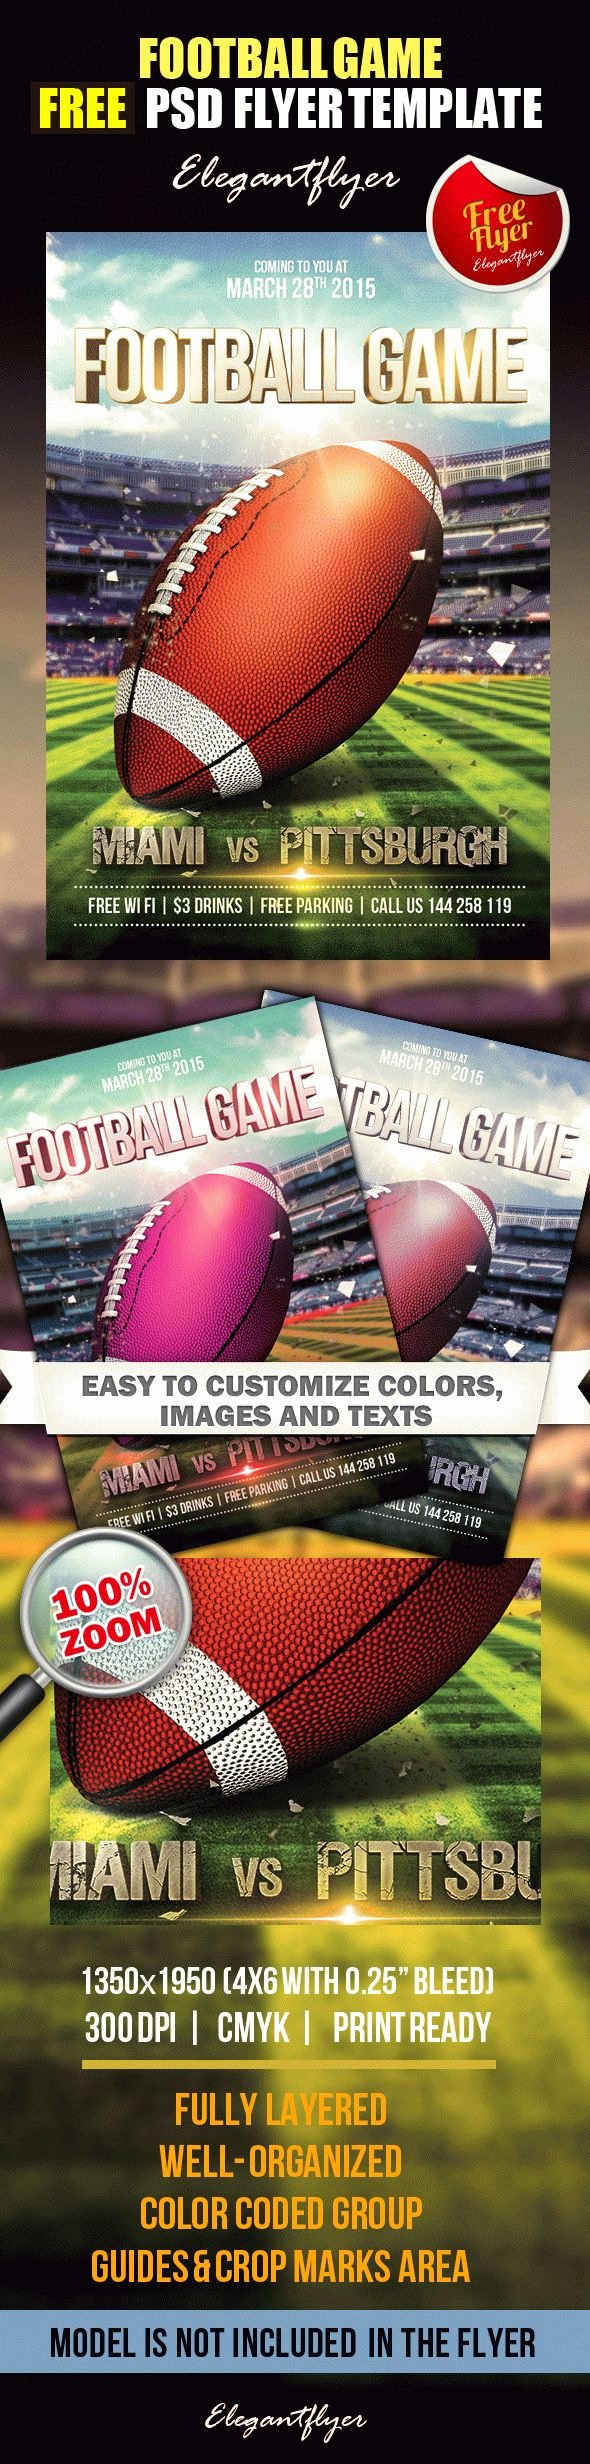 Football Flyer Templates Free Fresh Football Game – Free Flyer Psd Template – by Elegantflyer